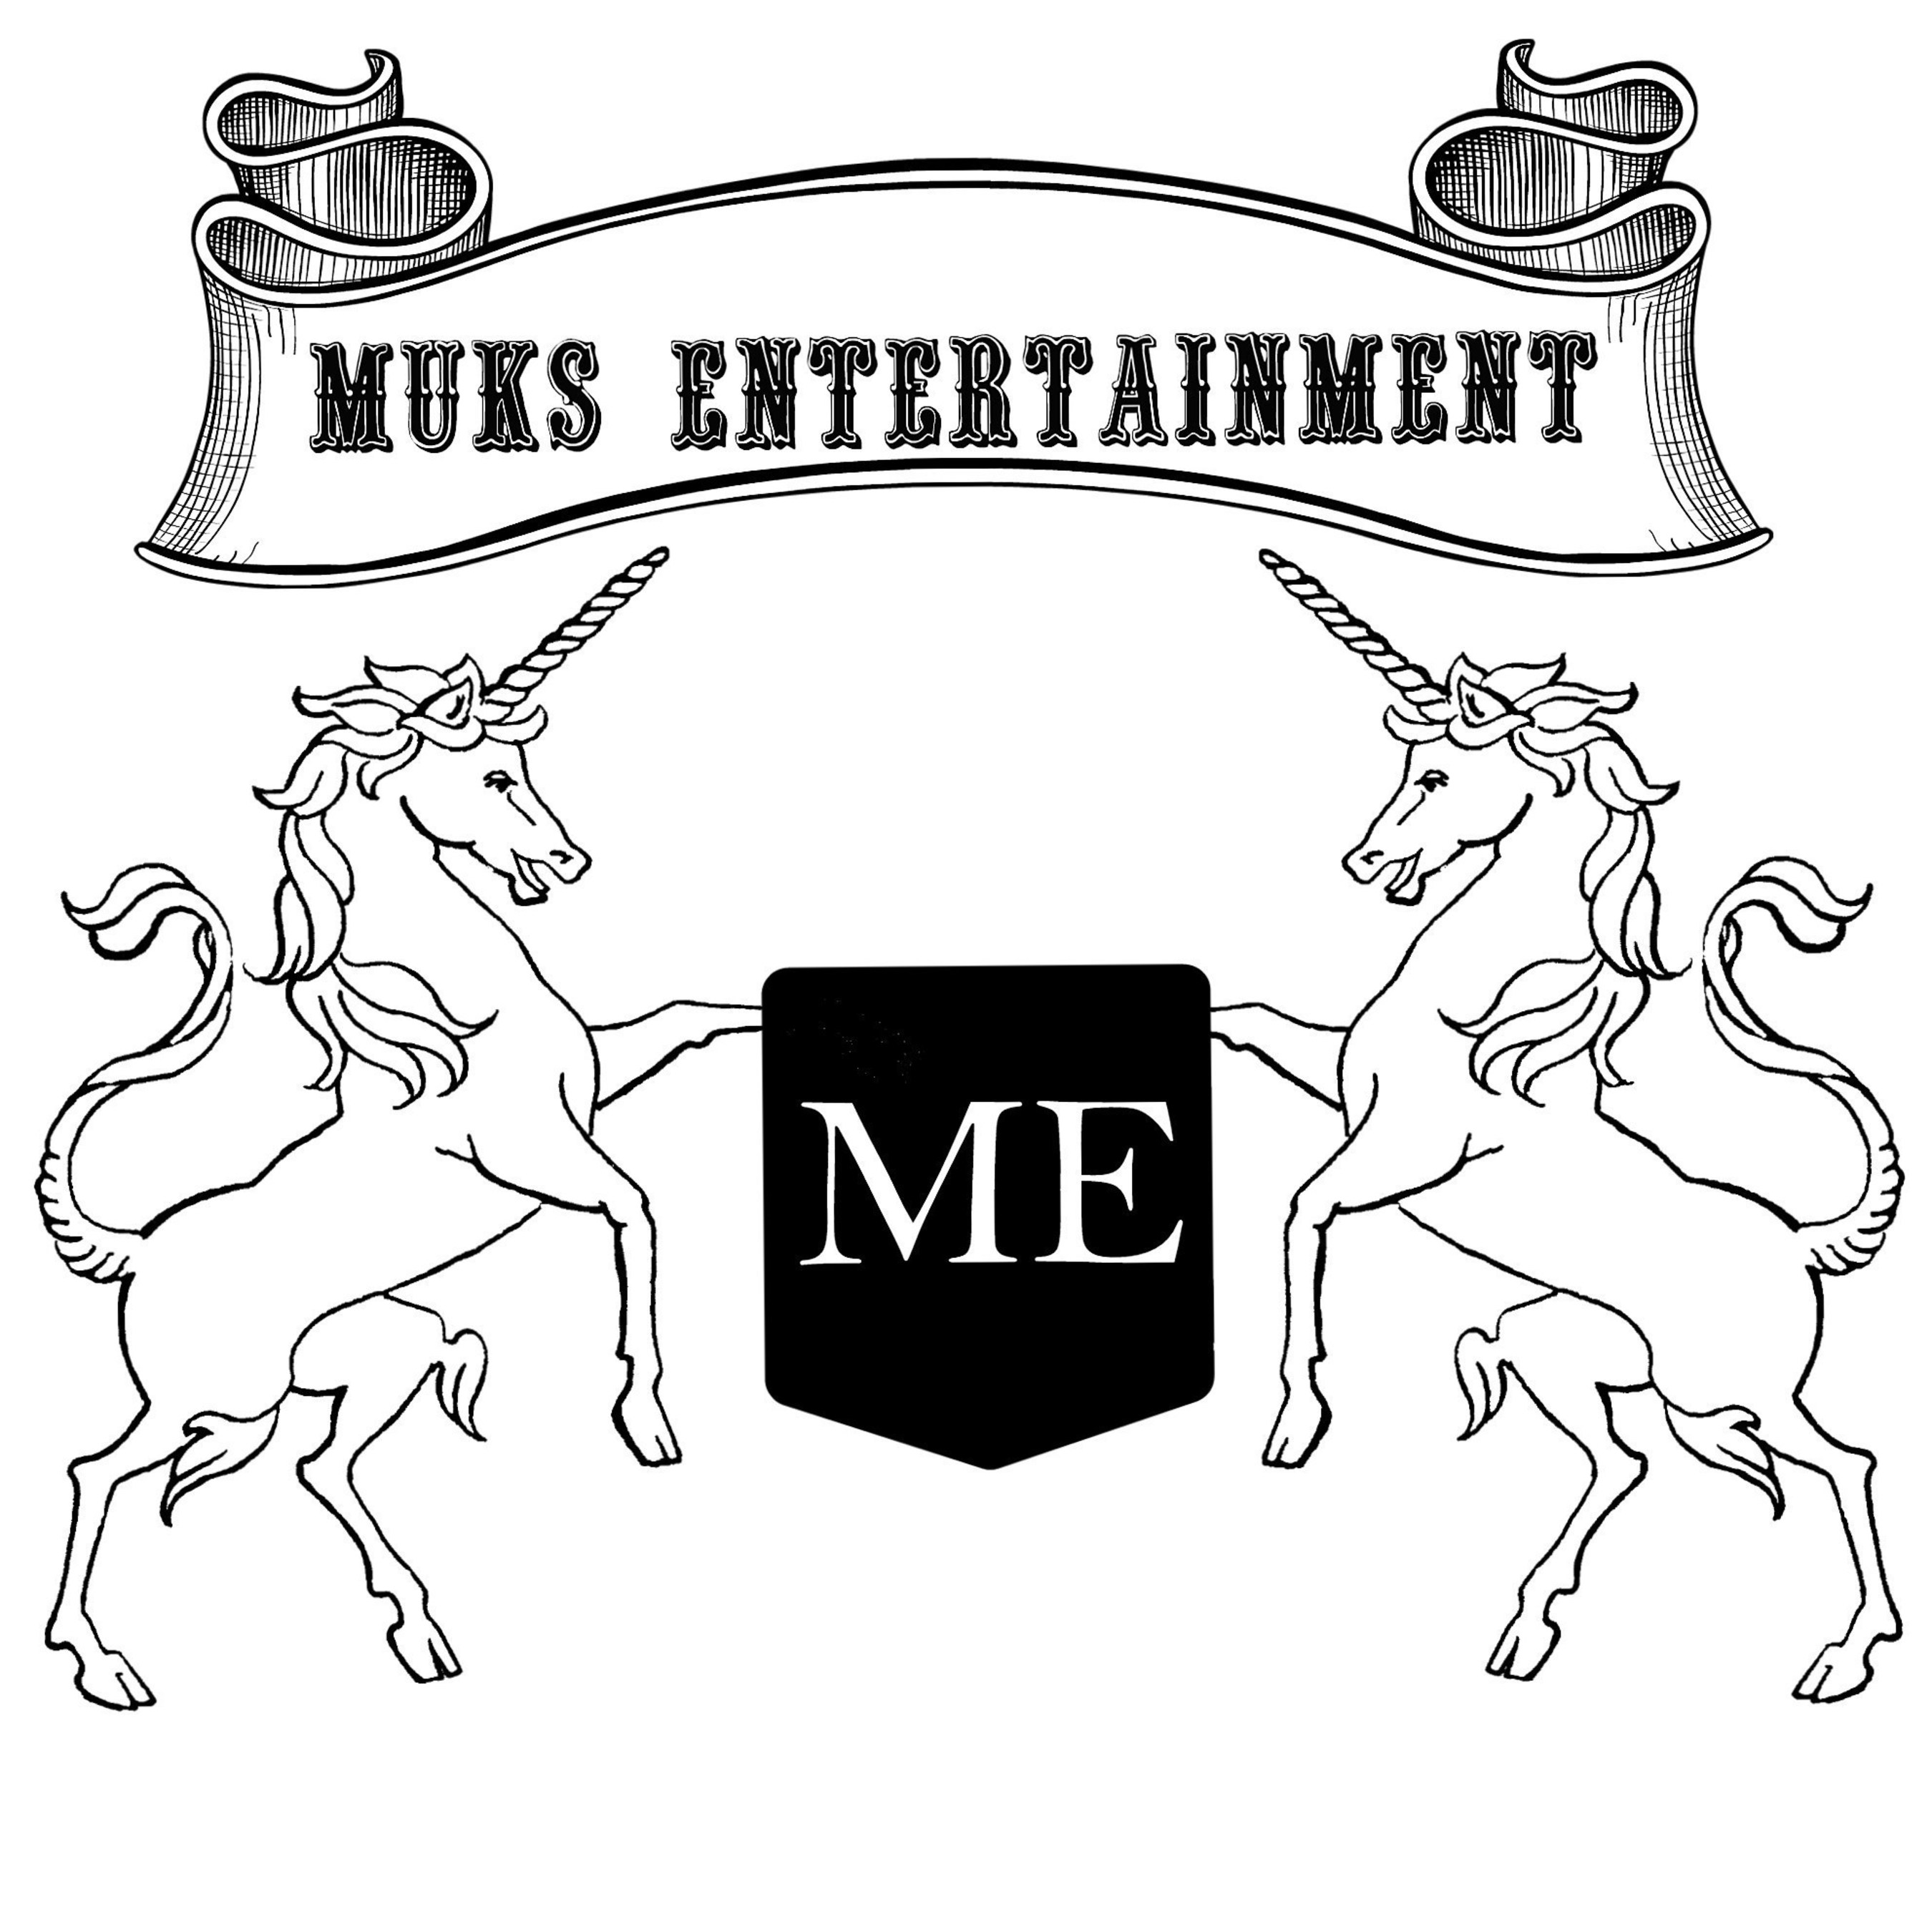 MUKS ENTERTAINMENT is a Dallas-based Entertainment Company focused on producing music, television, multi-media ...